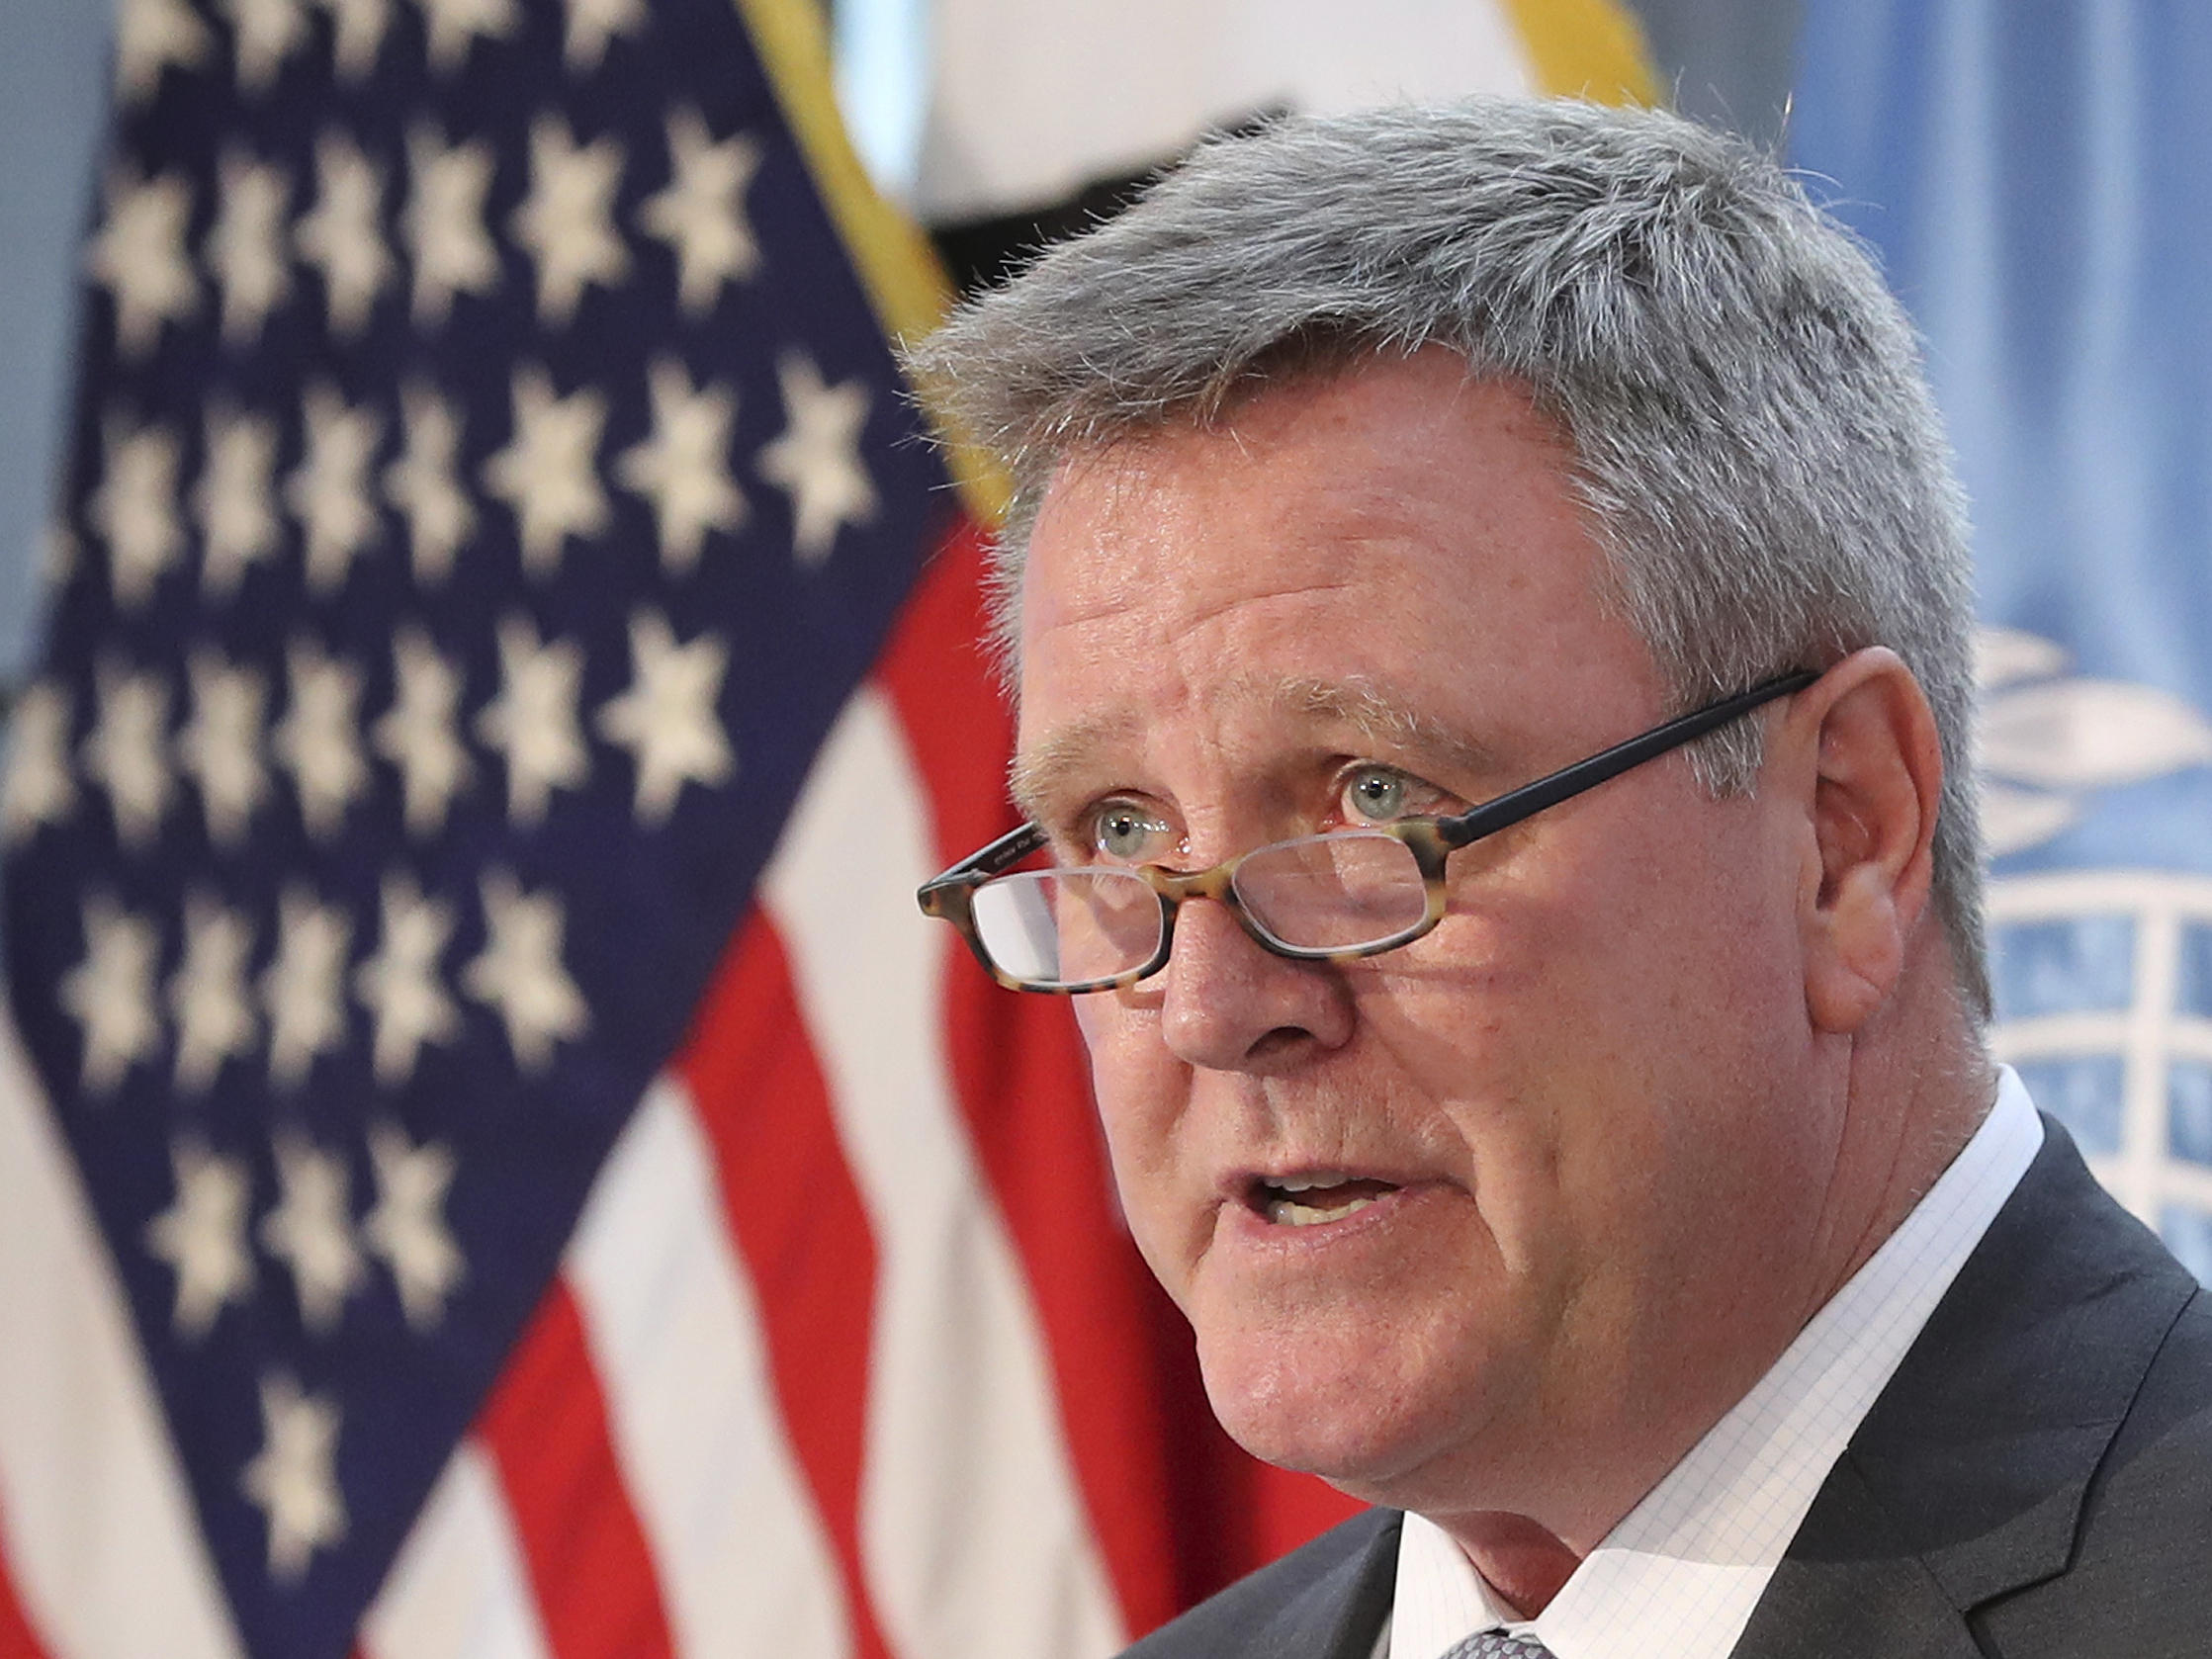 US Olympic Committee CEO Scott Blackmun Steps Down Following Larry Nassar Case